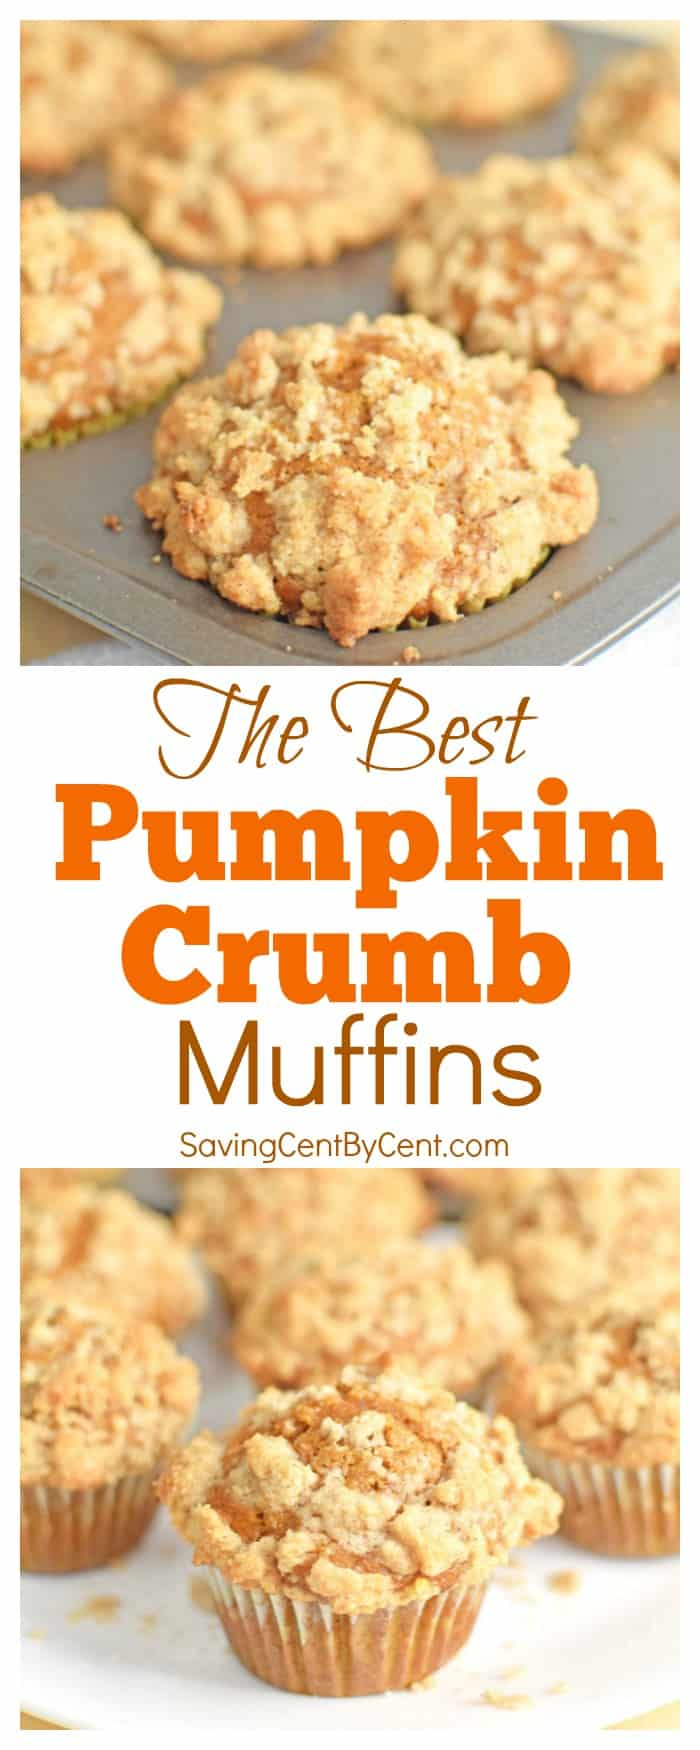 The Best Pumpkin Crumb Muffins